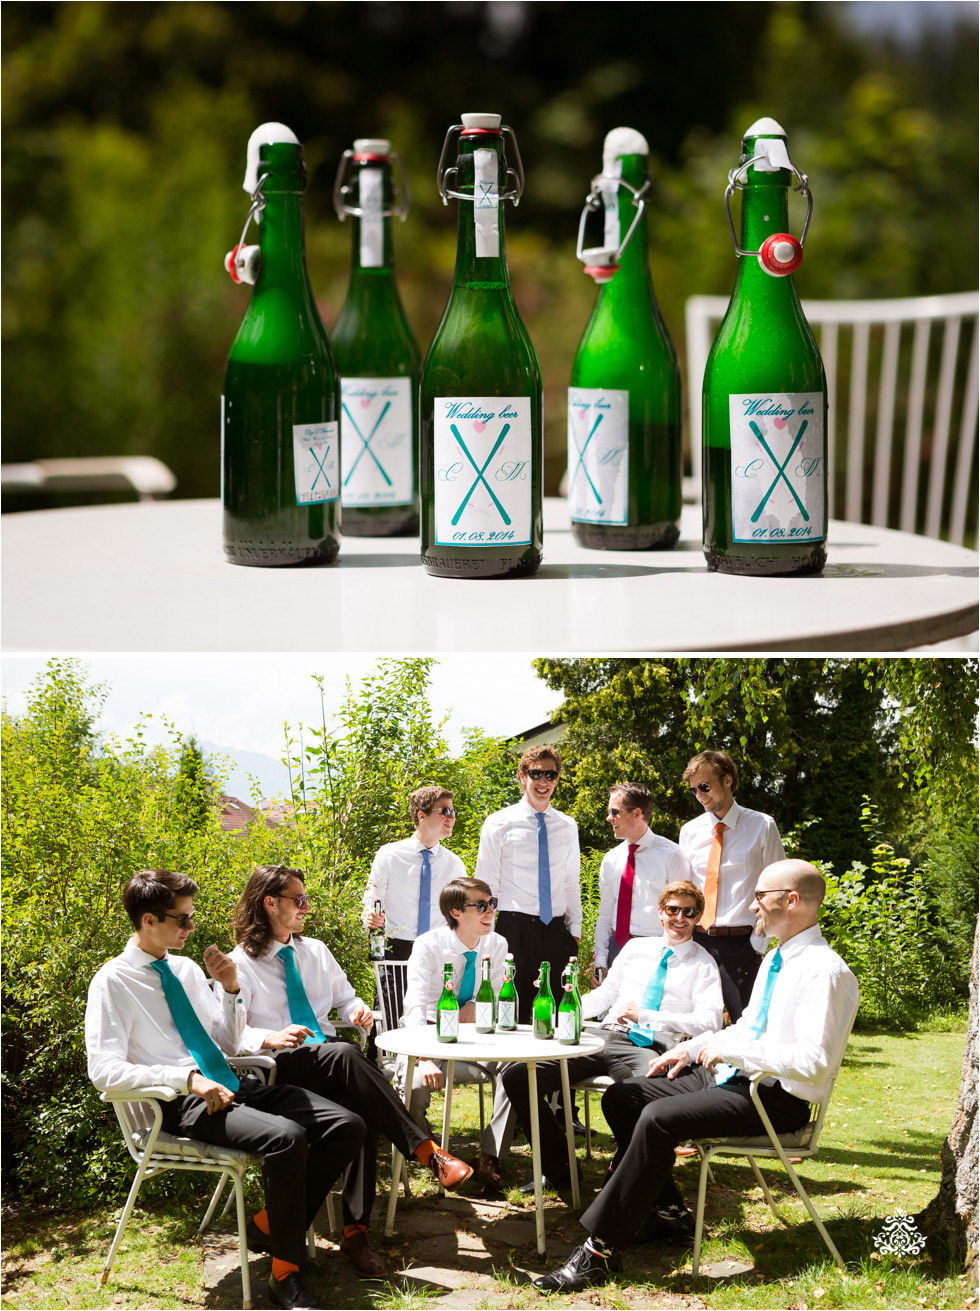 Ski-Inspired Summer Wedding | Cat & Menno and their Tiffany Blue Color Theme - Blog of Nina Hintringer Photography - Wedding Photography, Wedding Reportage and Destination Weddings